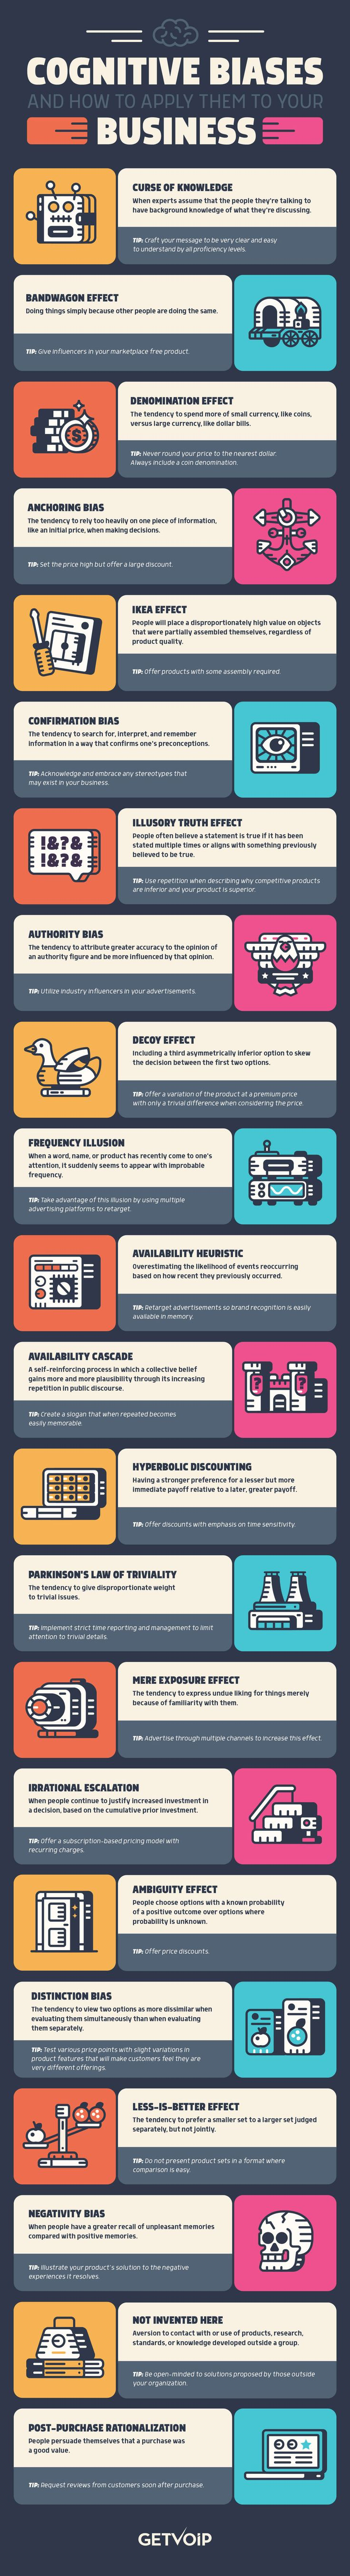 Understanding 25 Cognitive Biases That Impact Business [Infographic] – Innovation Excellence